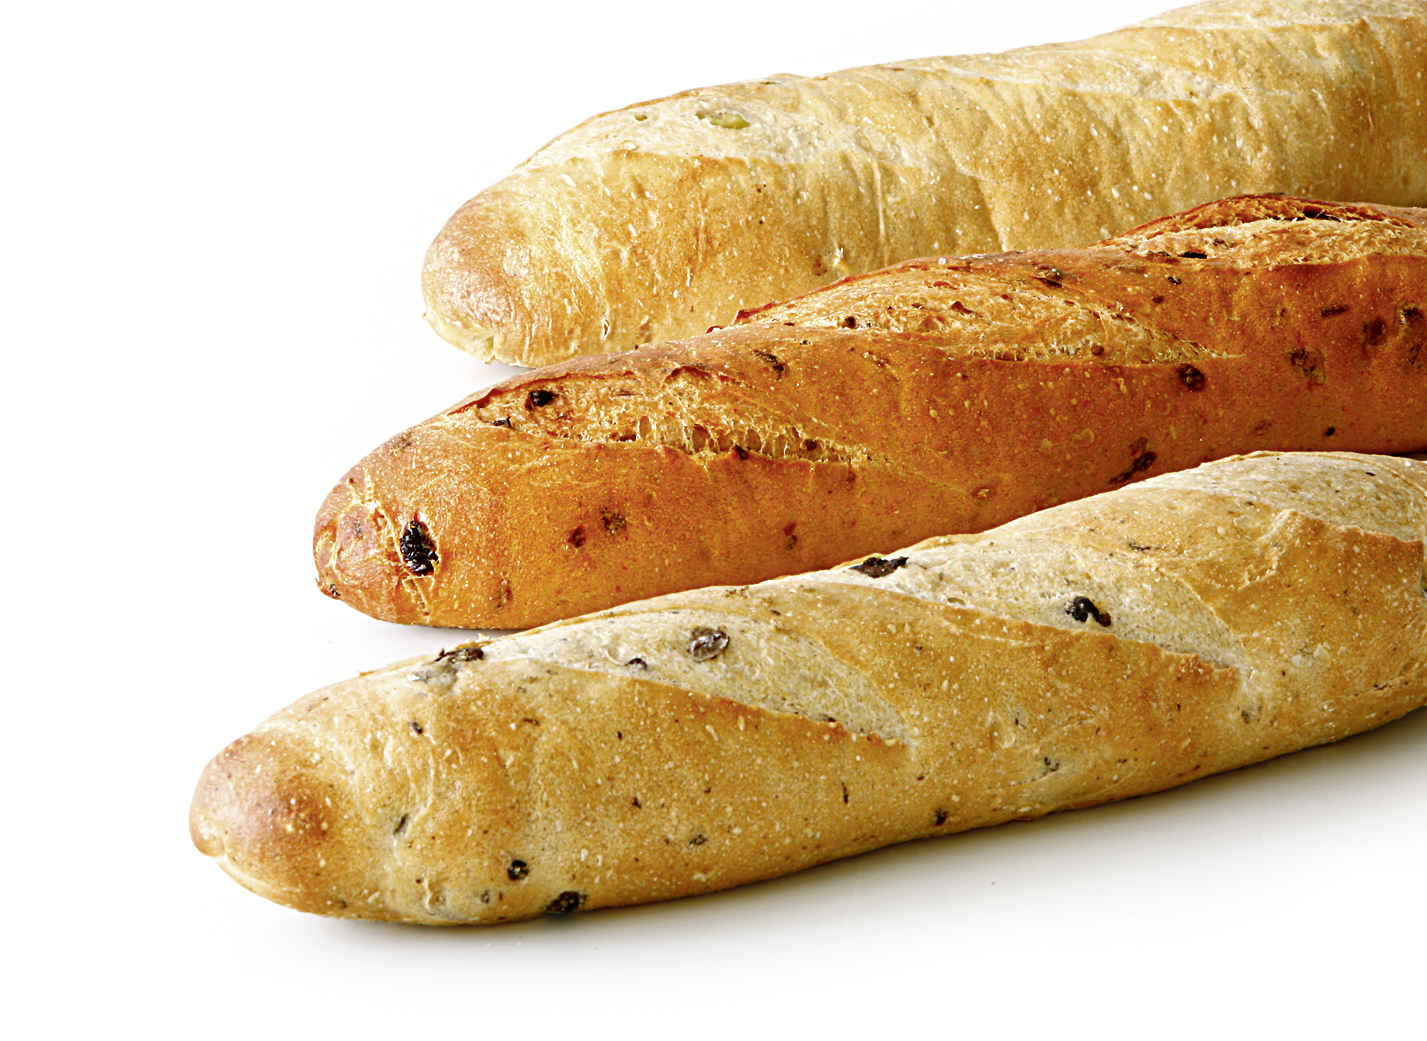 Baguette Mix - Baguette-mix of the varieties: tomato, chili and olive lenght: 30 cm